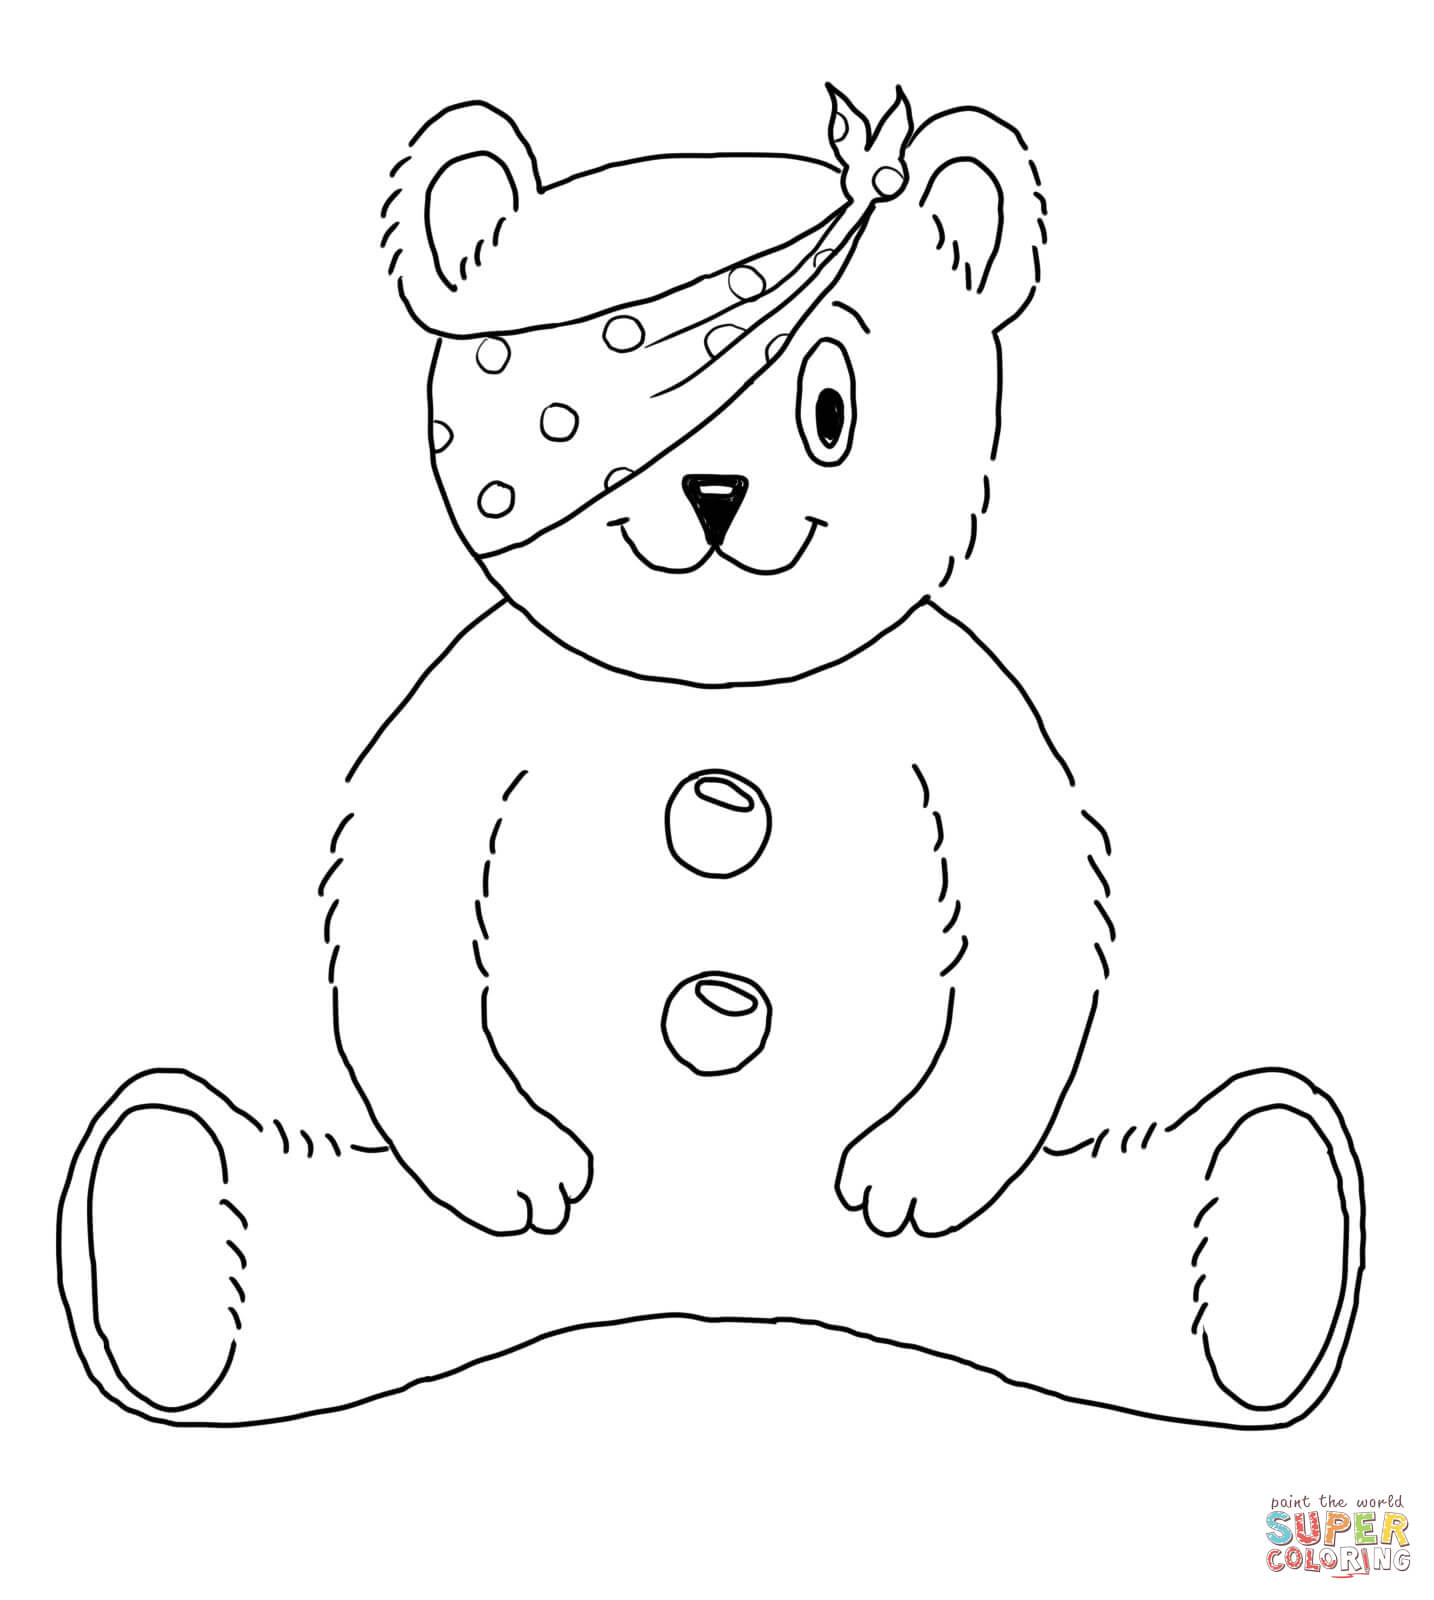 pudsey bear colouring sheets 10 best pudsey colouring sheets images on pinterest bear colouring pudsey sheets bear